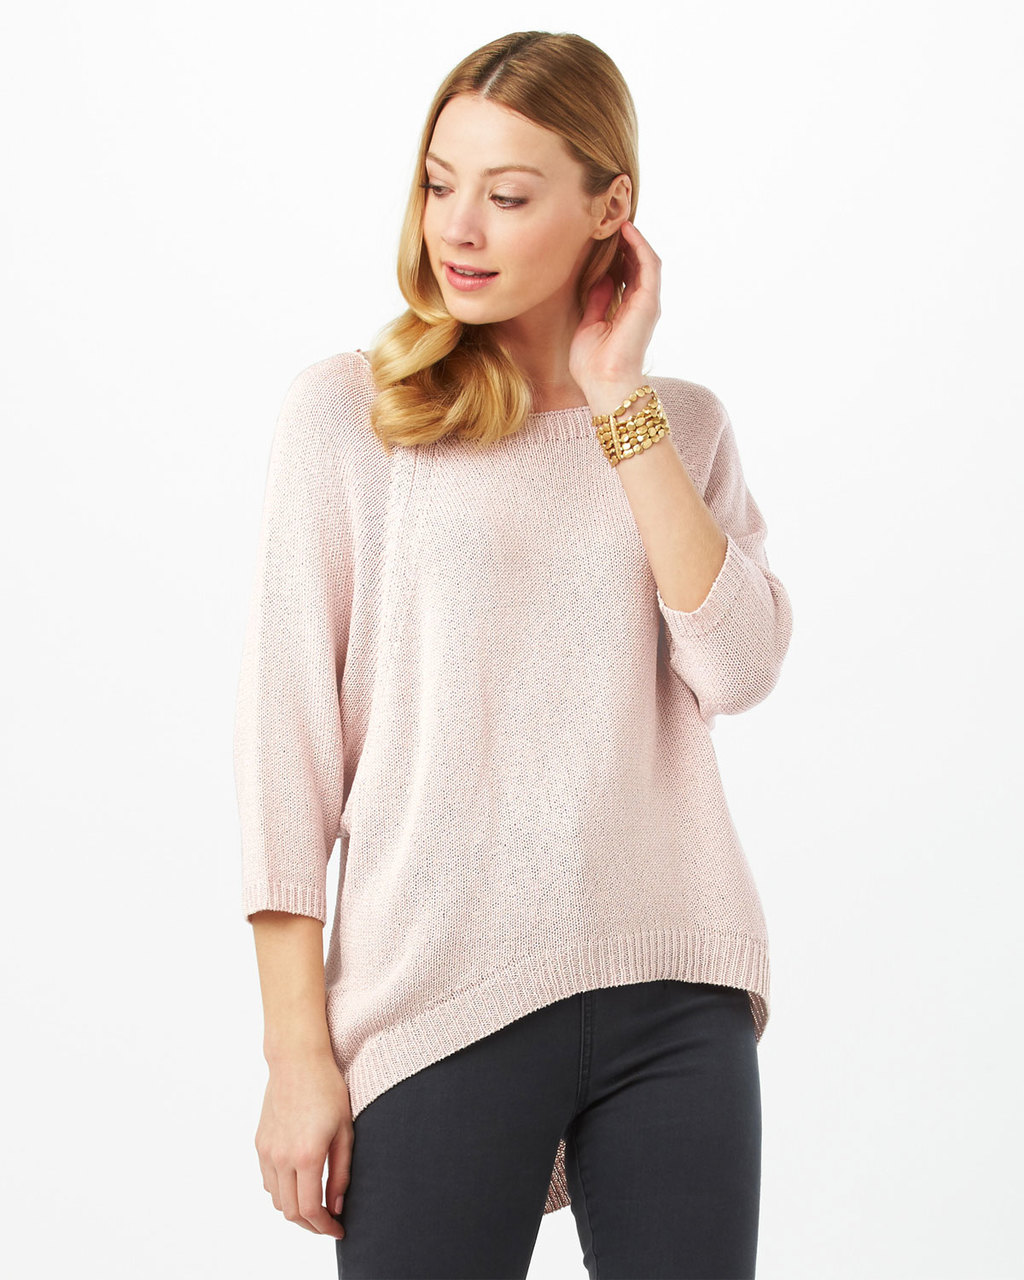 Bianca Batwing Jumper - pattern: plain; length: below the bottom; style: standard; predominant colour: blush; occasions: casual; fibres: acrylic - mix; fit: loose; neckline: crew; sleeve length: 3/4 length; sleeve style: standard; texture group: knits/crochet; pattern type: fabric; season: s/s 2016; wardrobe: basic